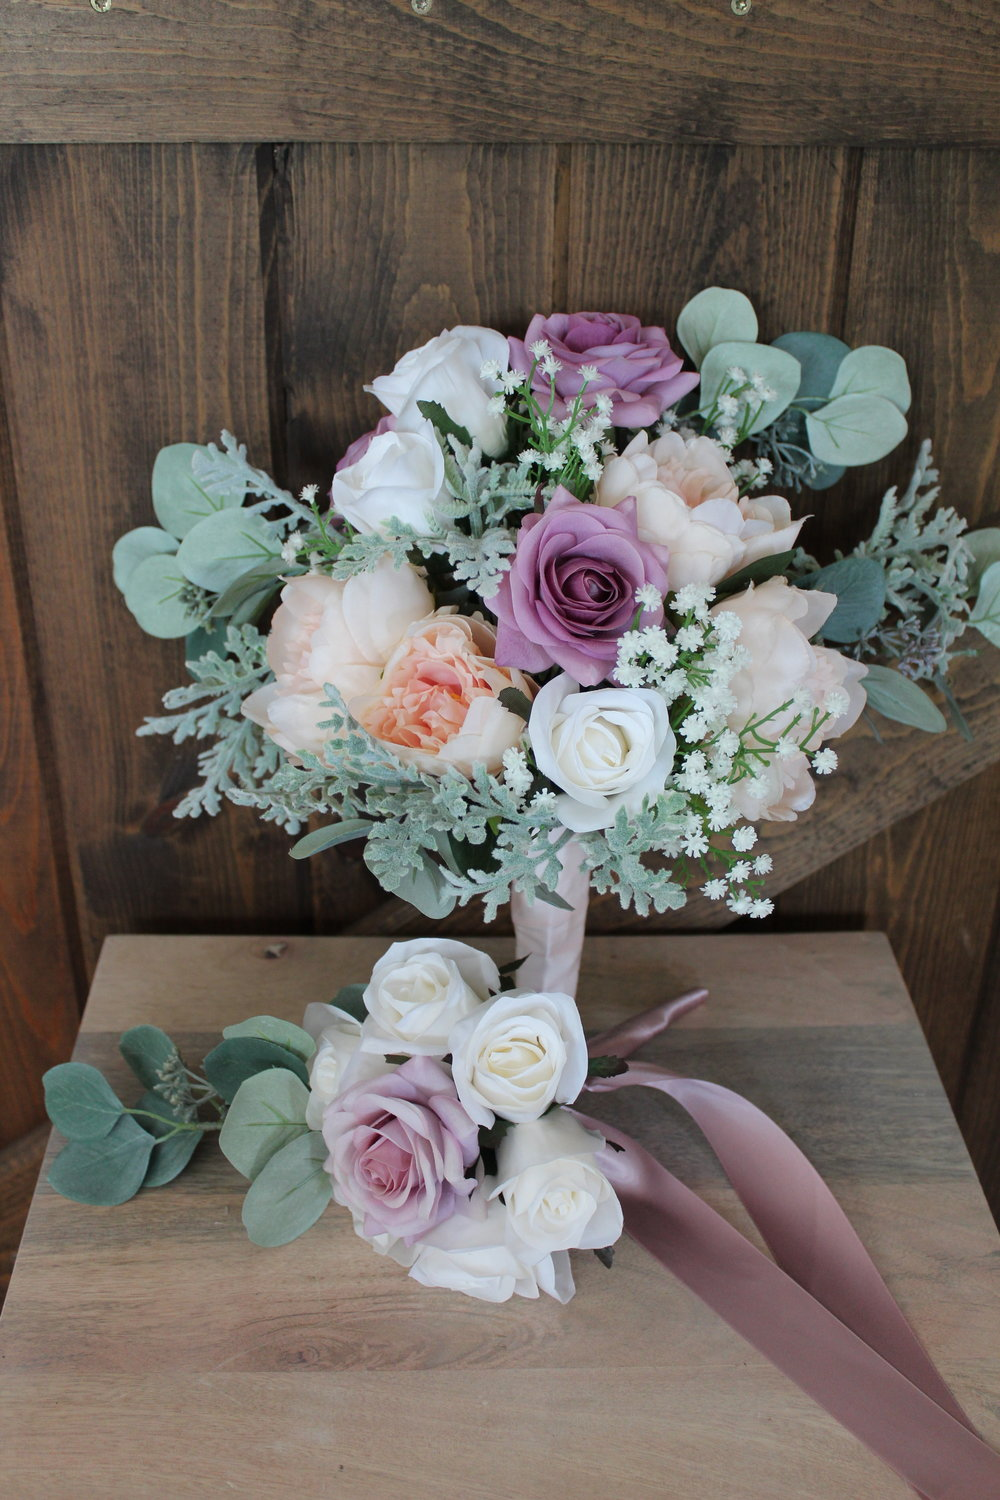 One of the bridesmaid bouquets with the cute little toss bouquet. The toss included ivory Roses, a single dark mauve Rose, Seeded Eucalyptus and that beautiful mauve satin ribbon.